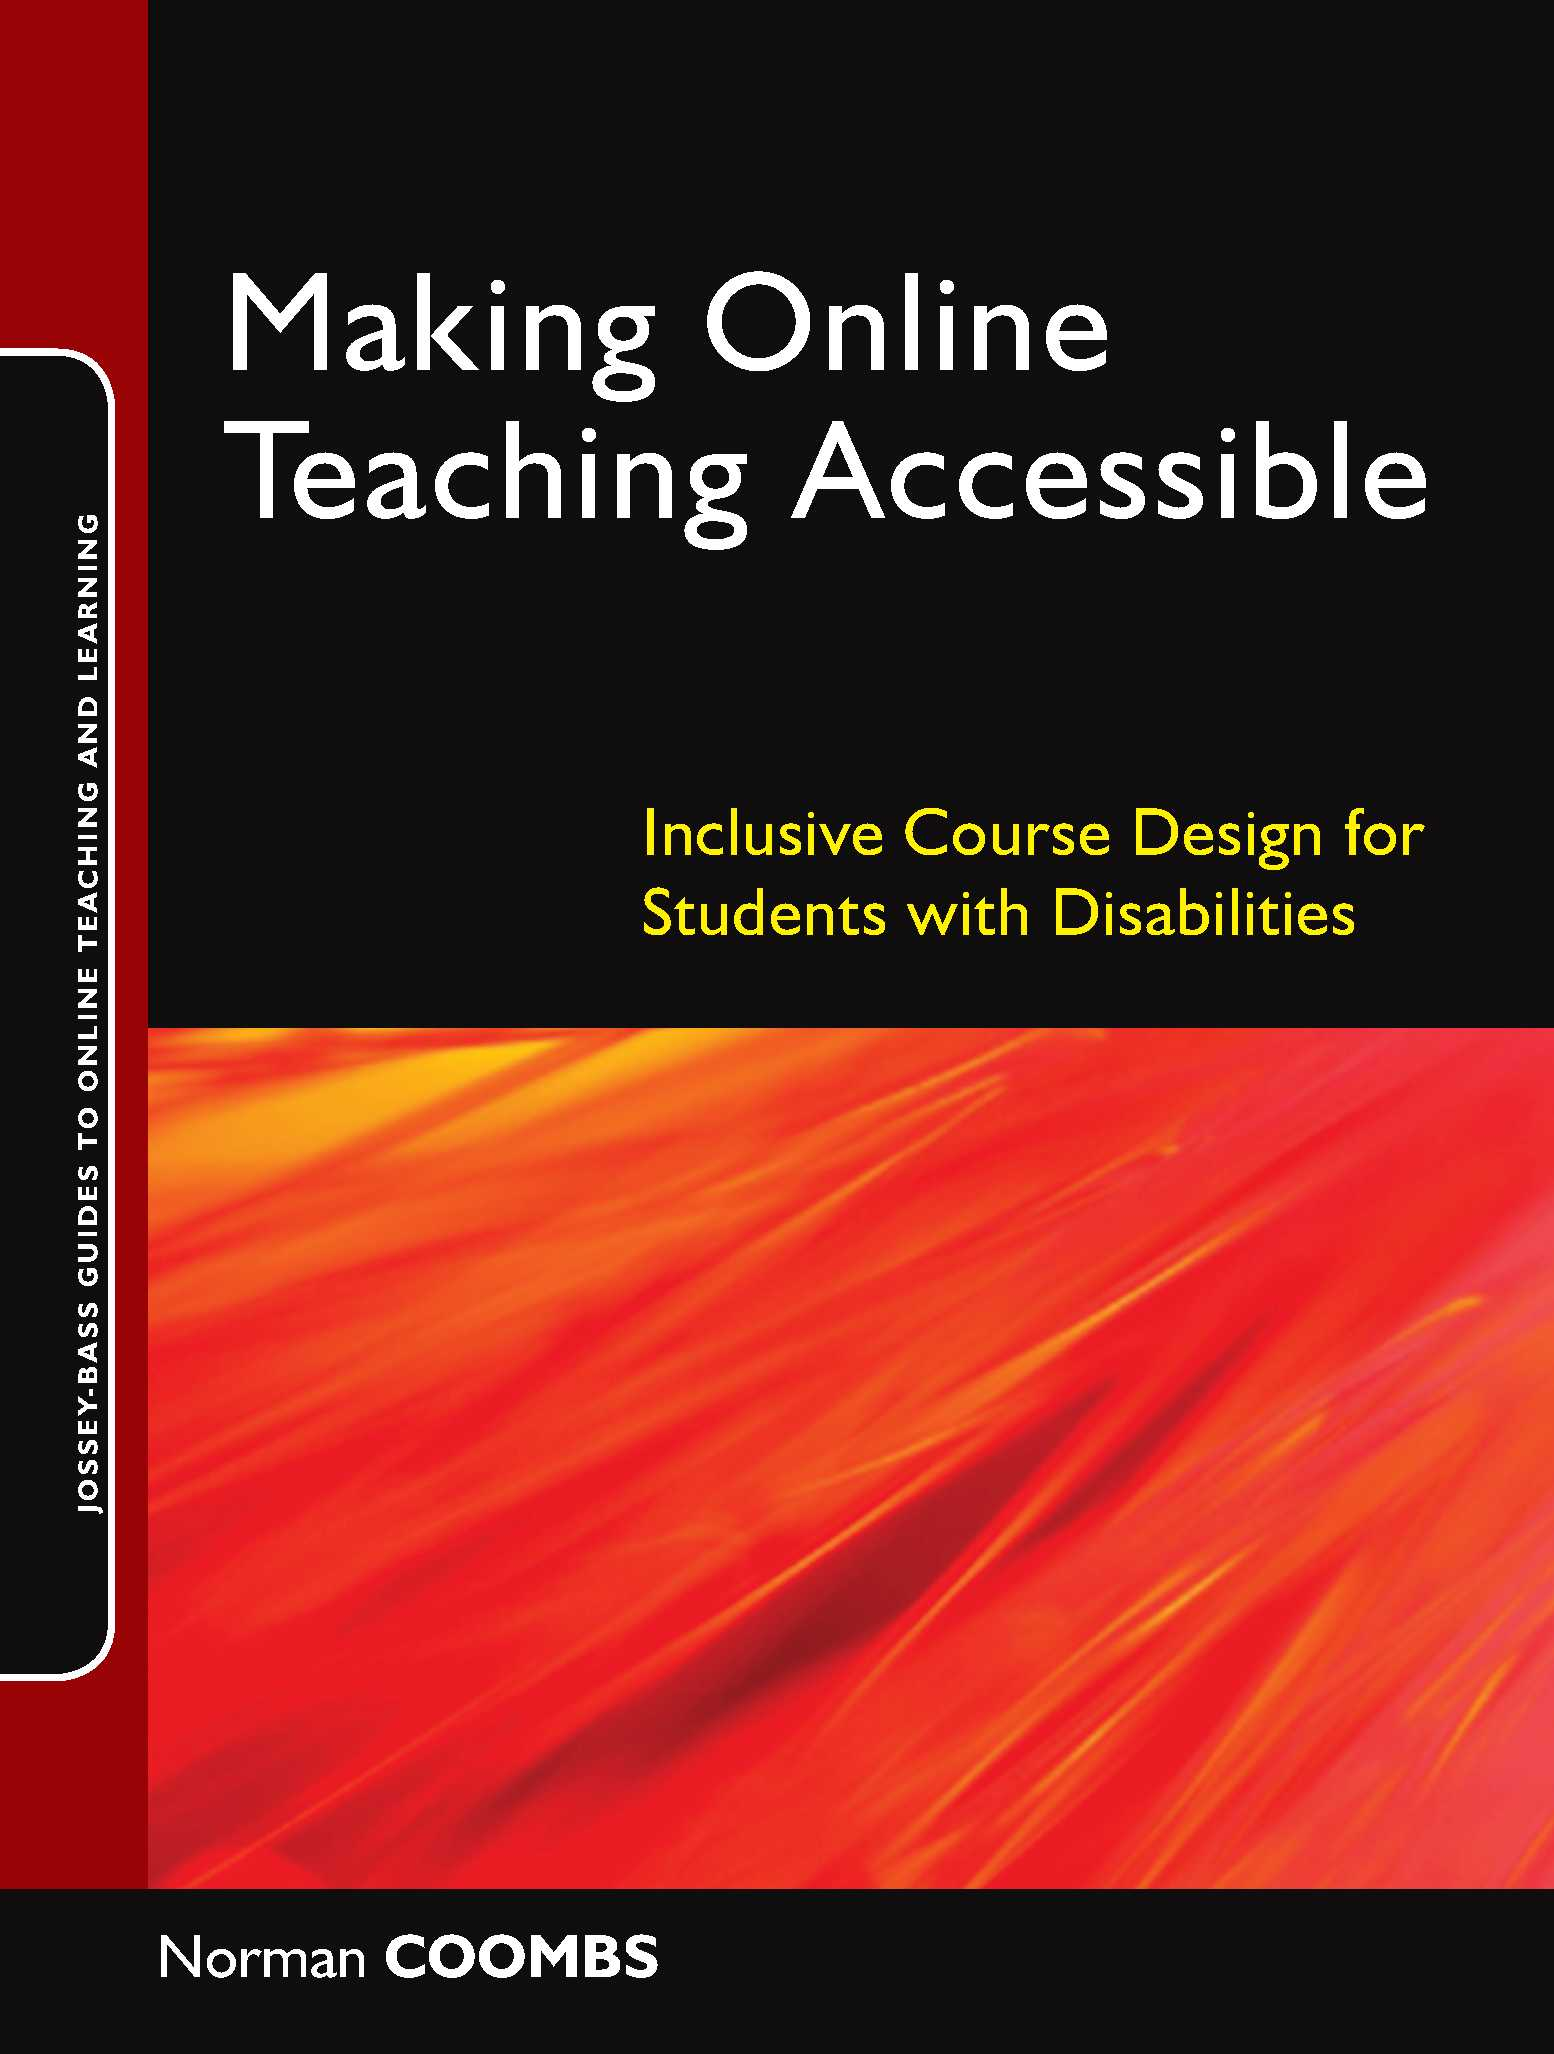 Making Online Teaching Accessible book cover